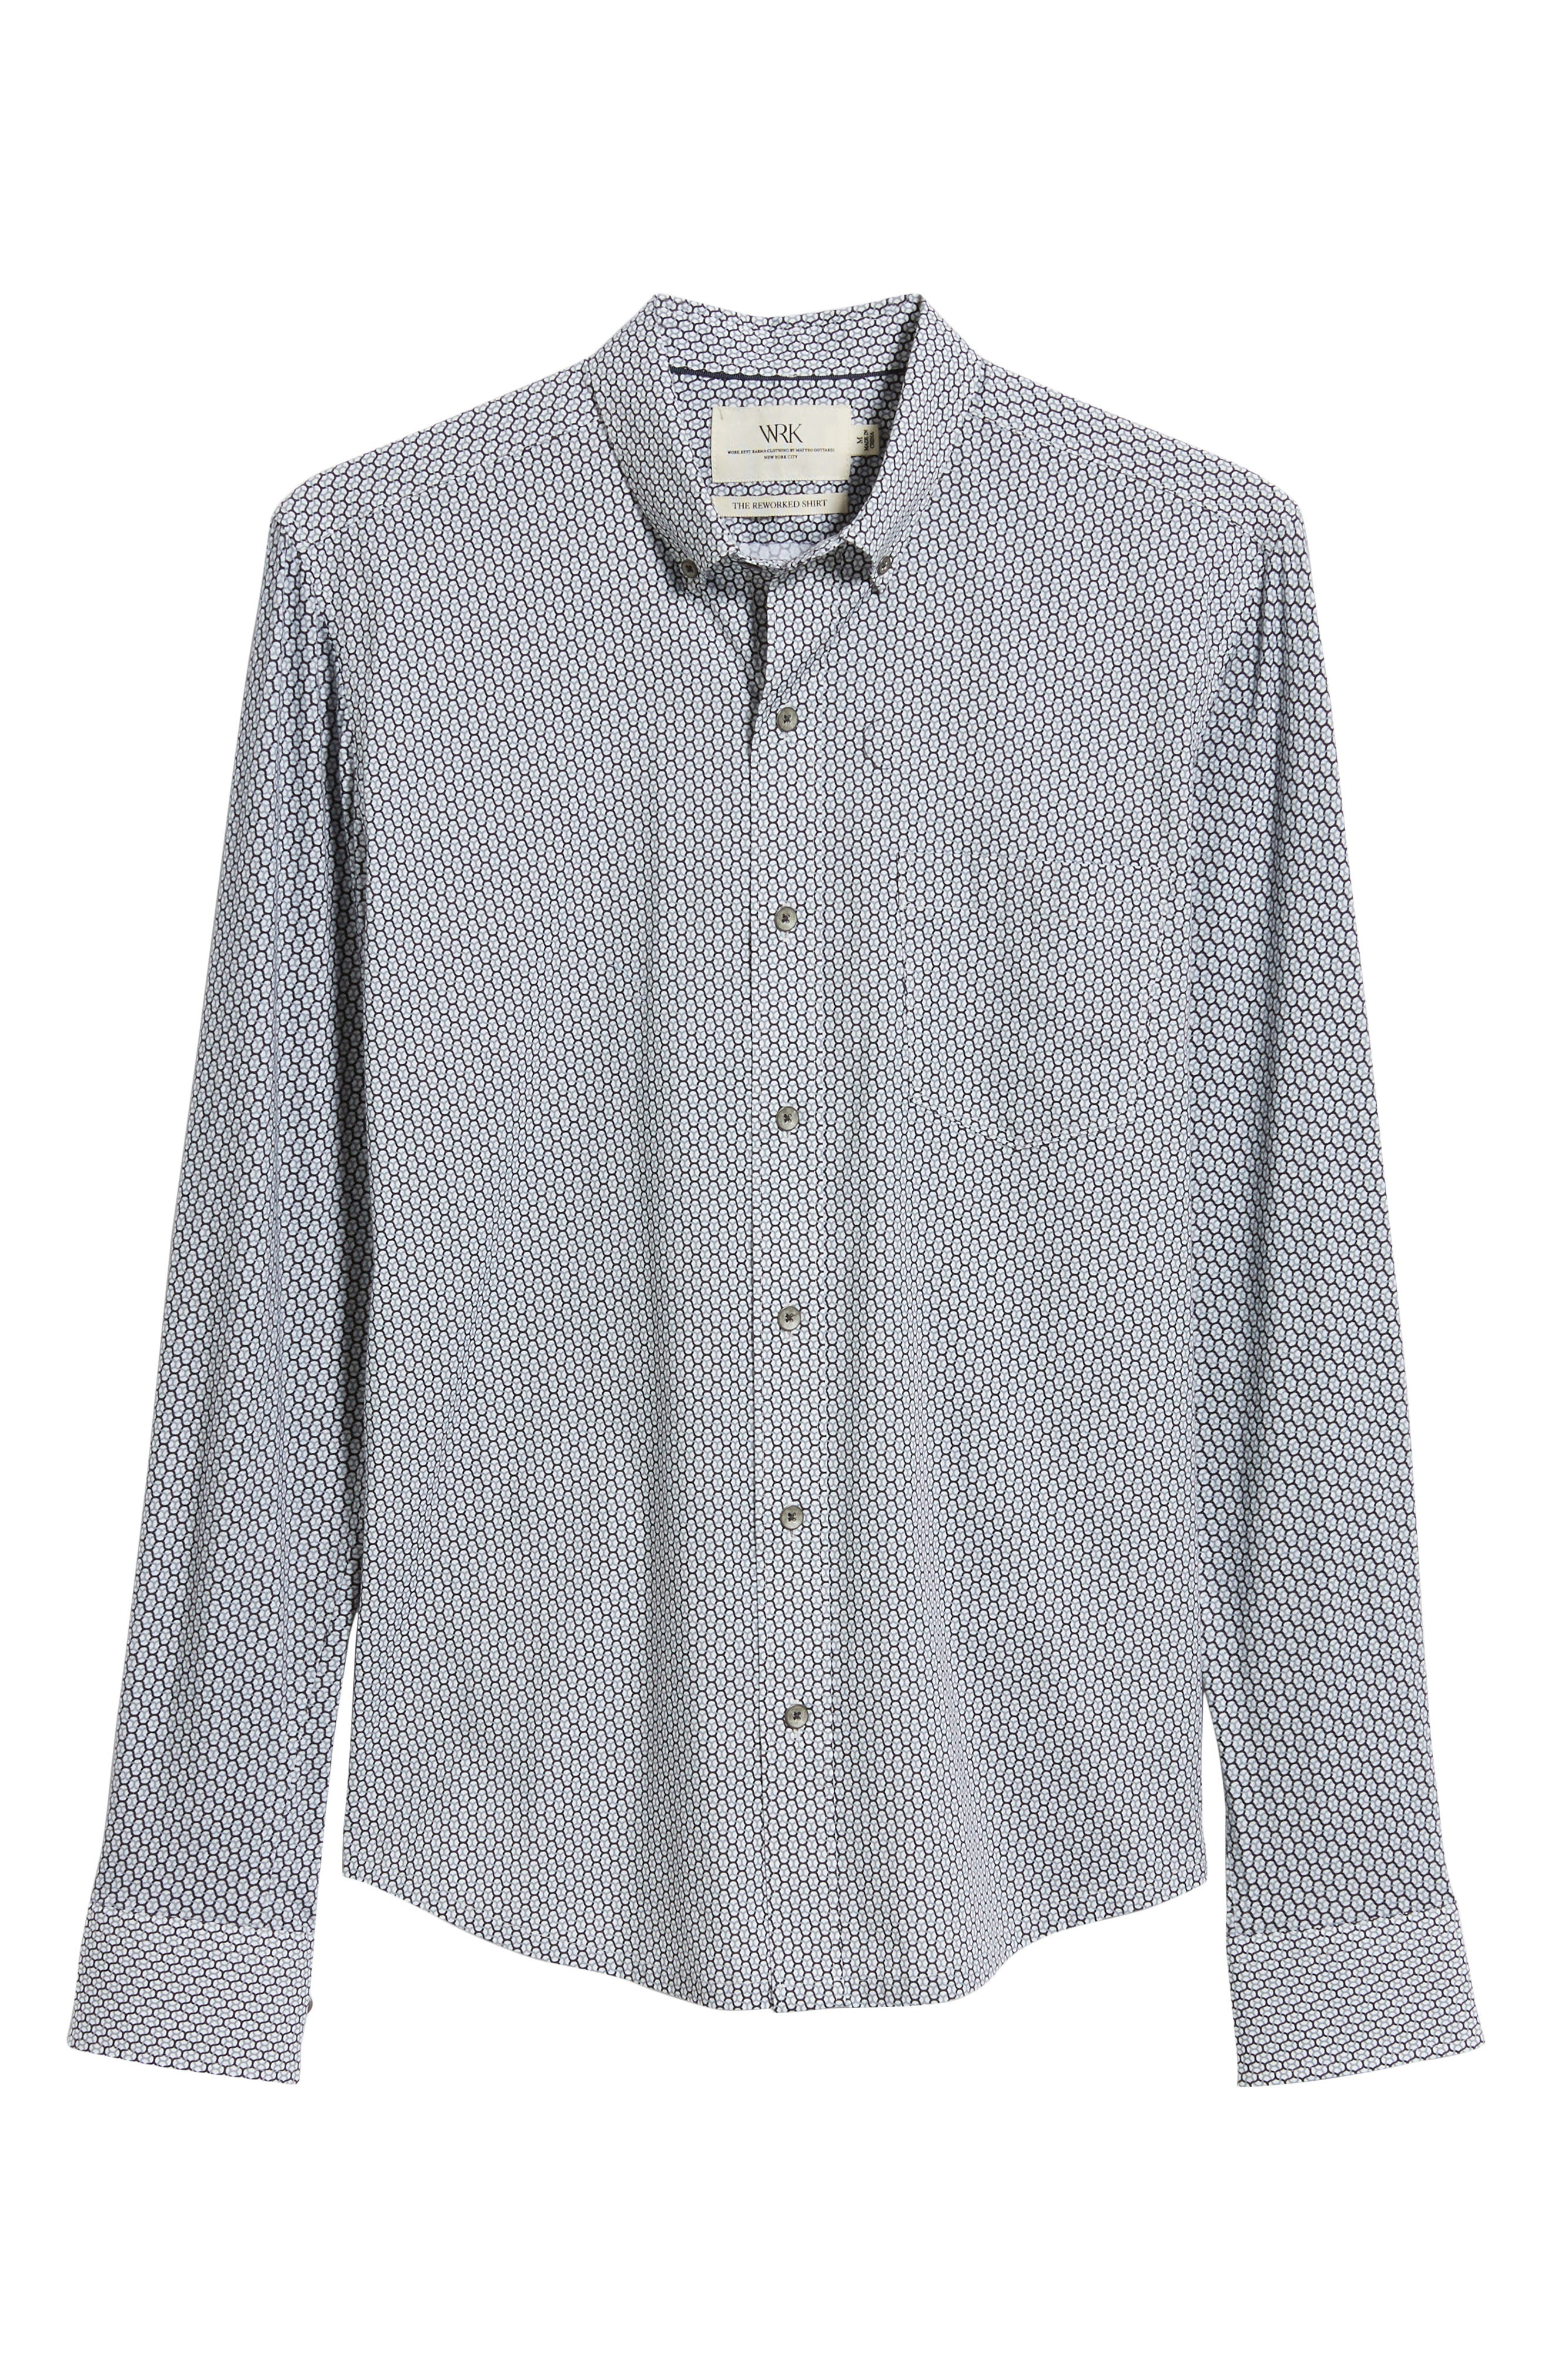 Reworked Slim Fit Print Sport Shirt,                             Alternate thumbnail 5, color,                             WHITE/ GREY